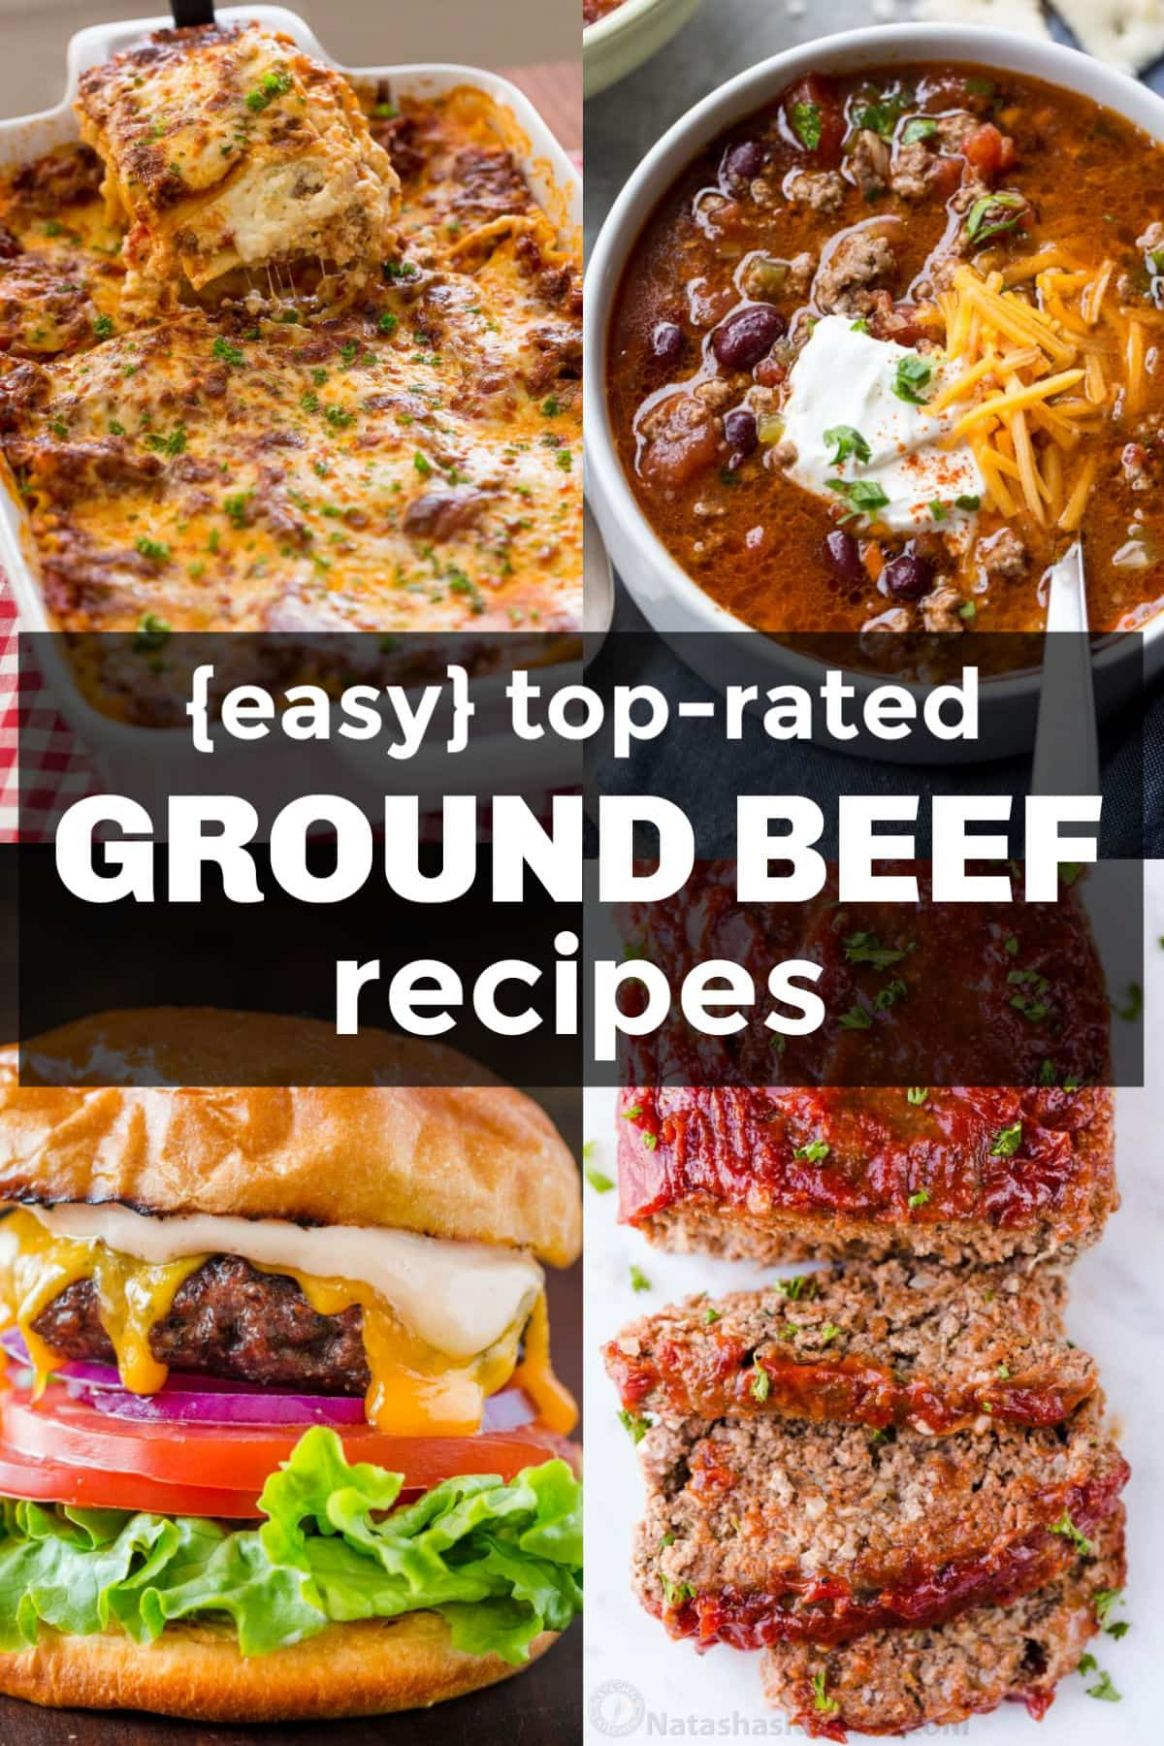 How to Cook Ground Beef for Ground Beef Recipes - Beef Recipes Easy